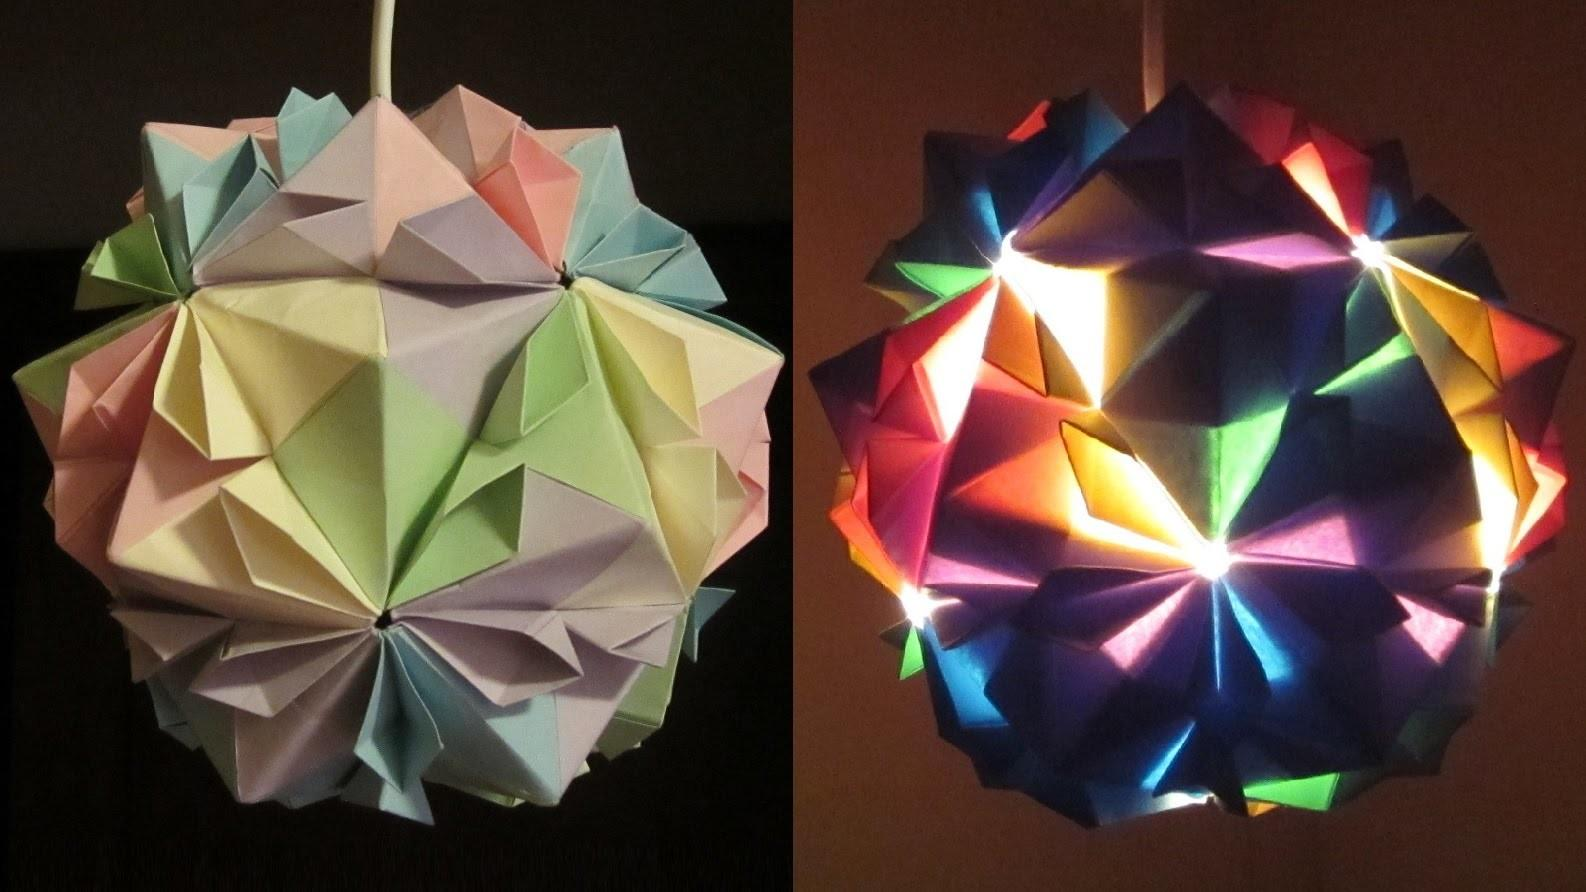 Diy Lamp Flower Ball Learn Make Paper Lampshade Lantern Modular Origami